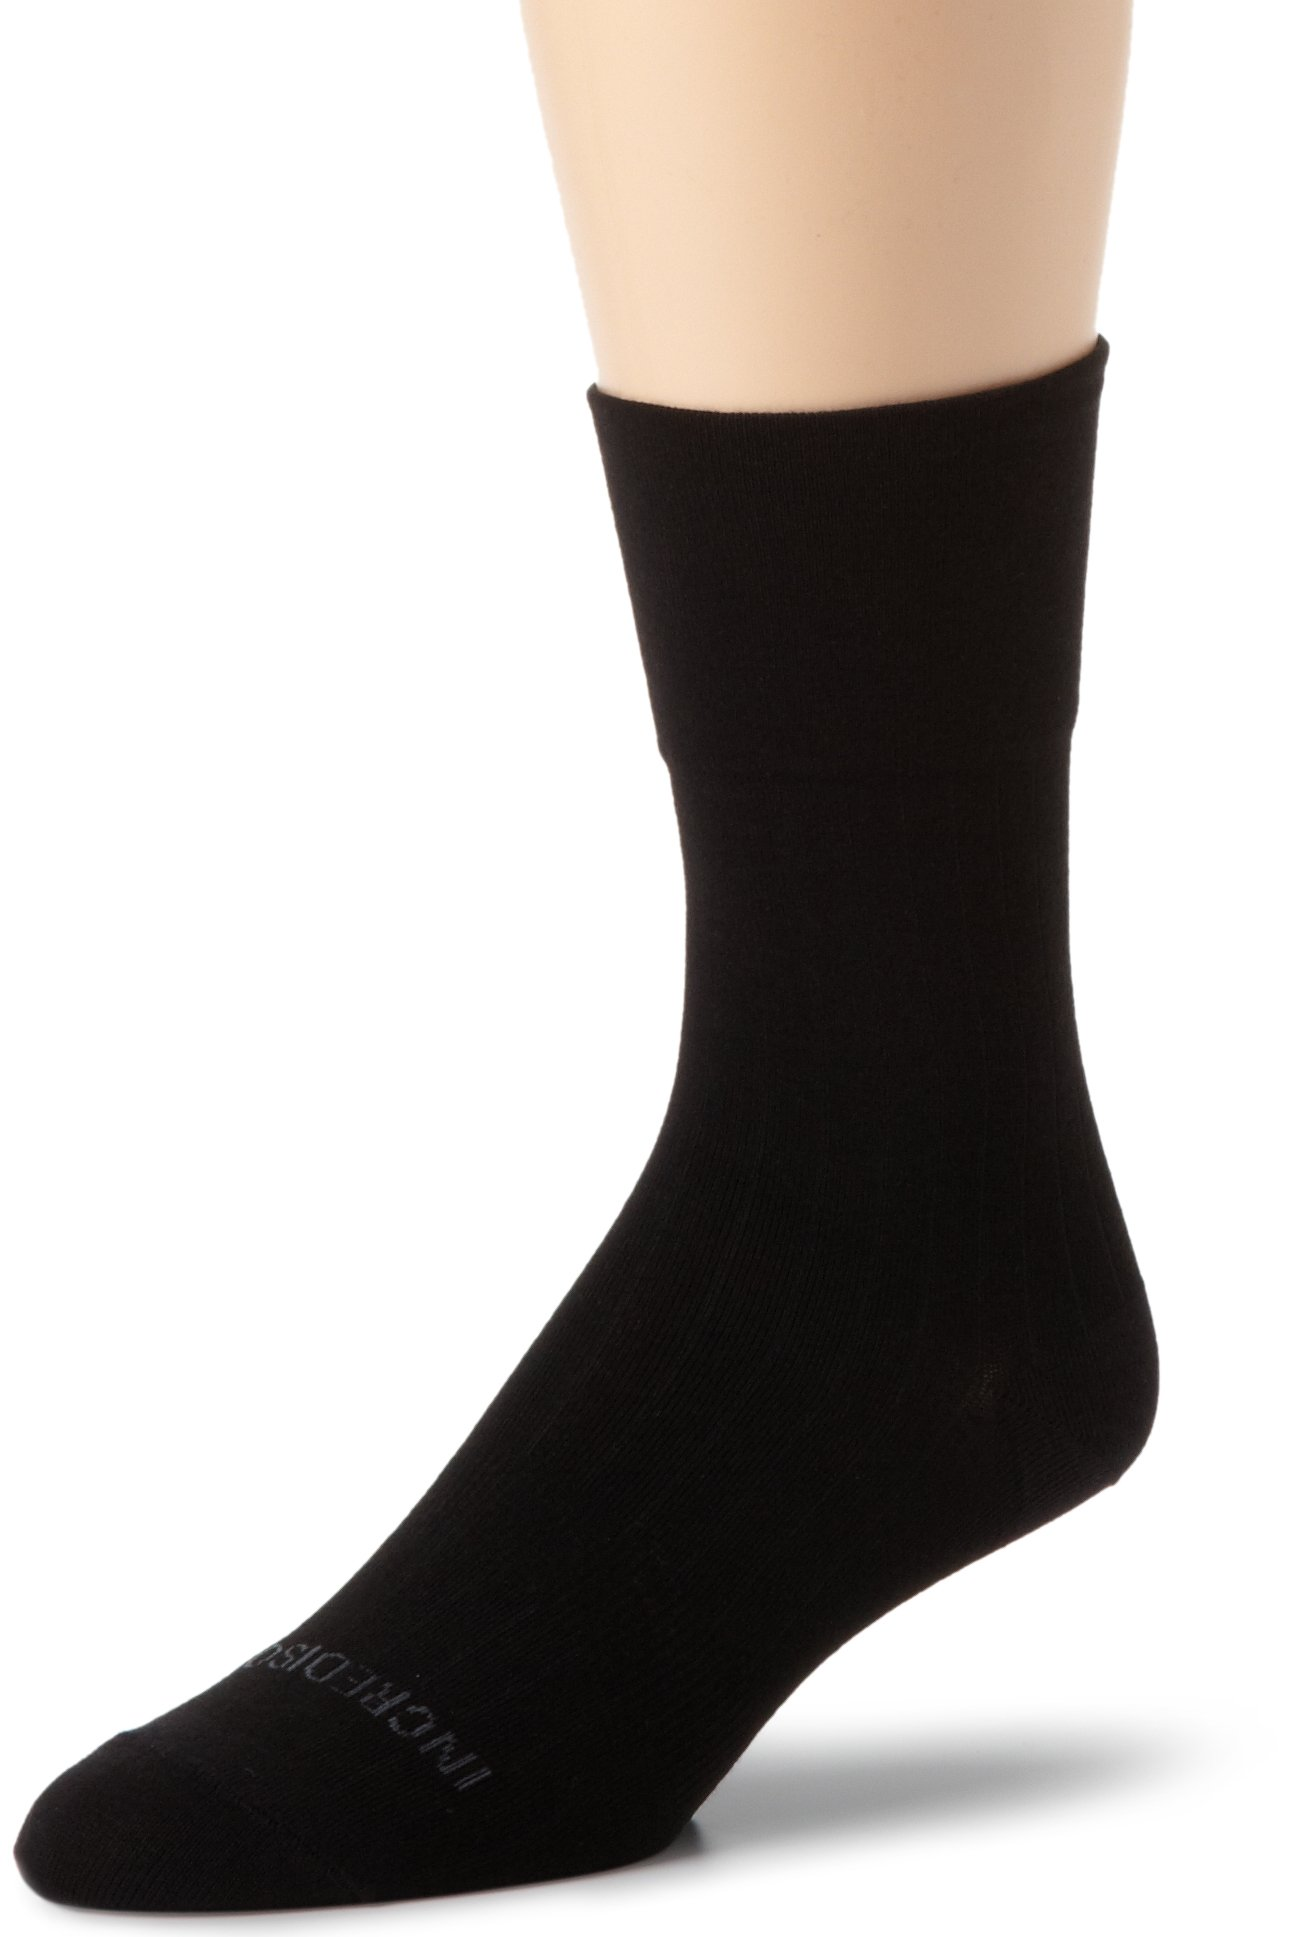 Incredisocks Men's Diabetic Compression Dress Socks by IncrediWear